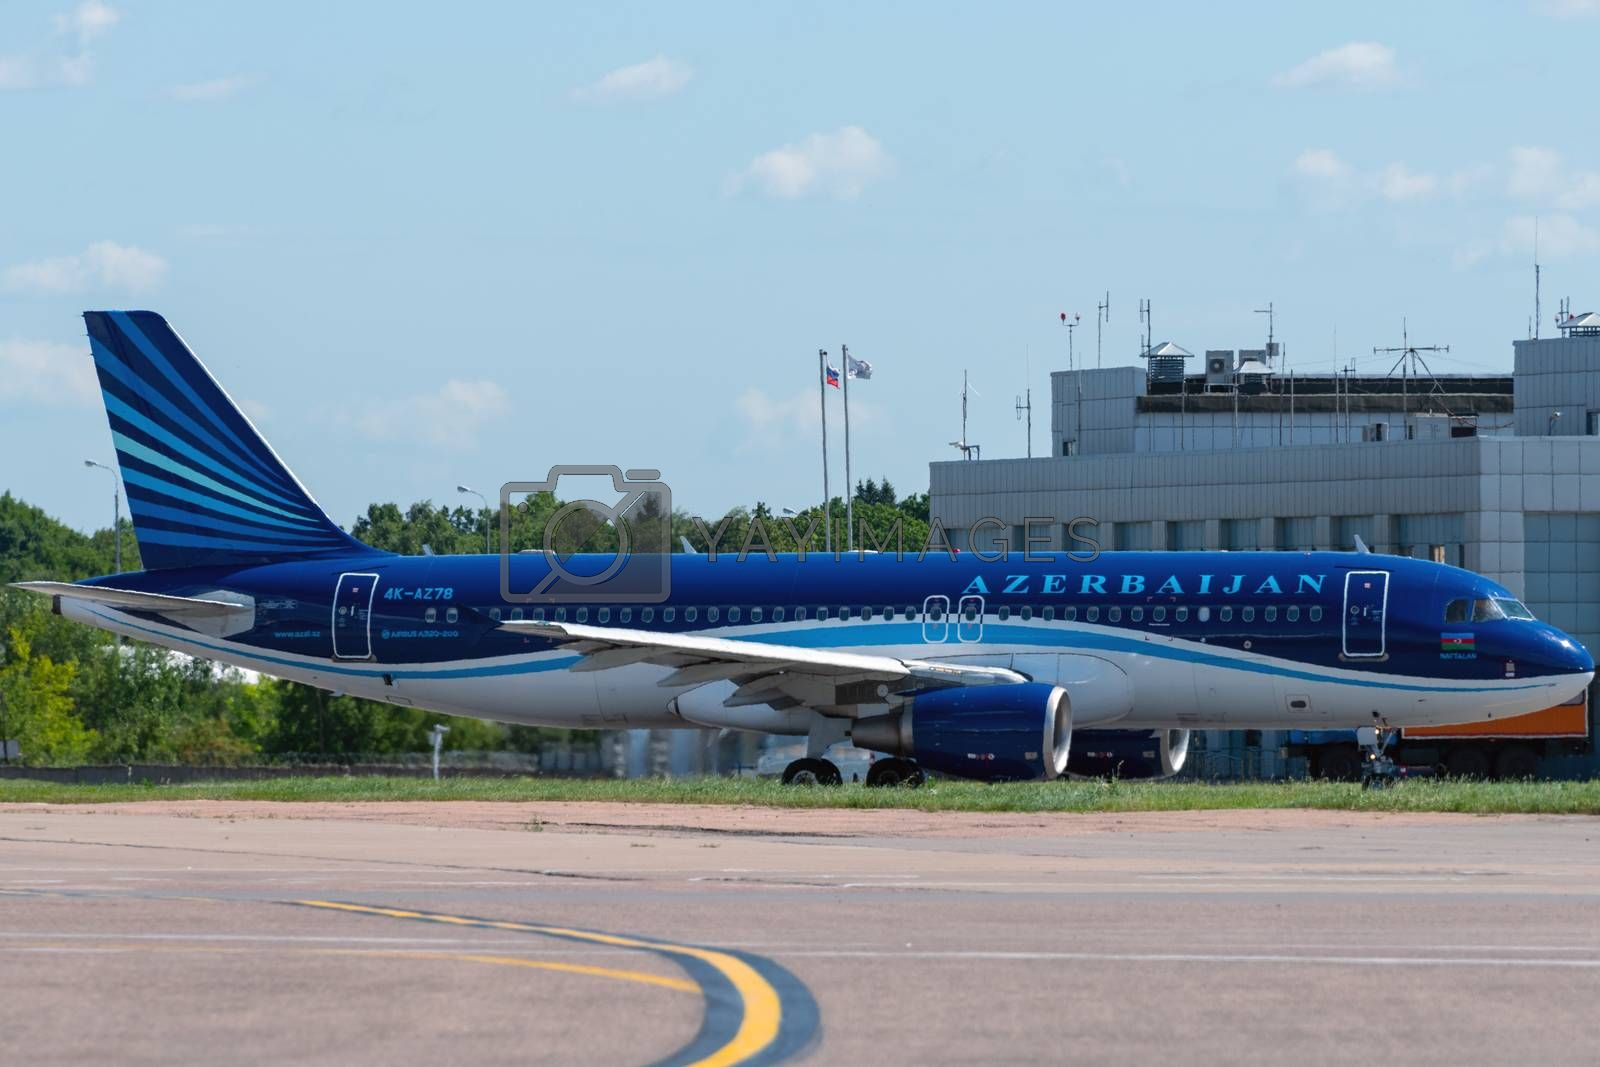 July 2, 2019, Moscow, Russia. Airplane Airbus A320-200 AZAL Azerbaijan Airlines at Vnukovo airport in Moscow.